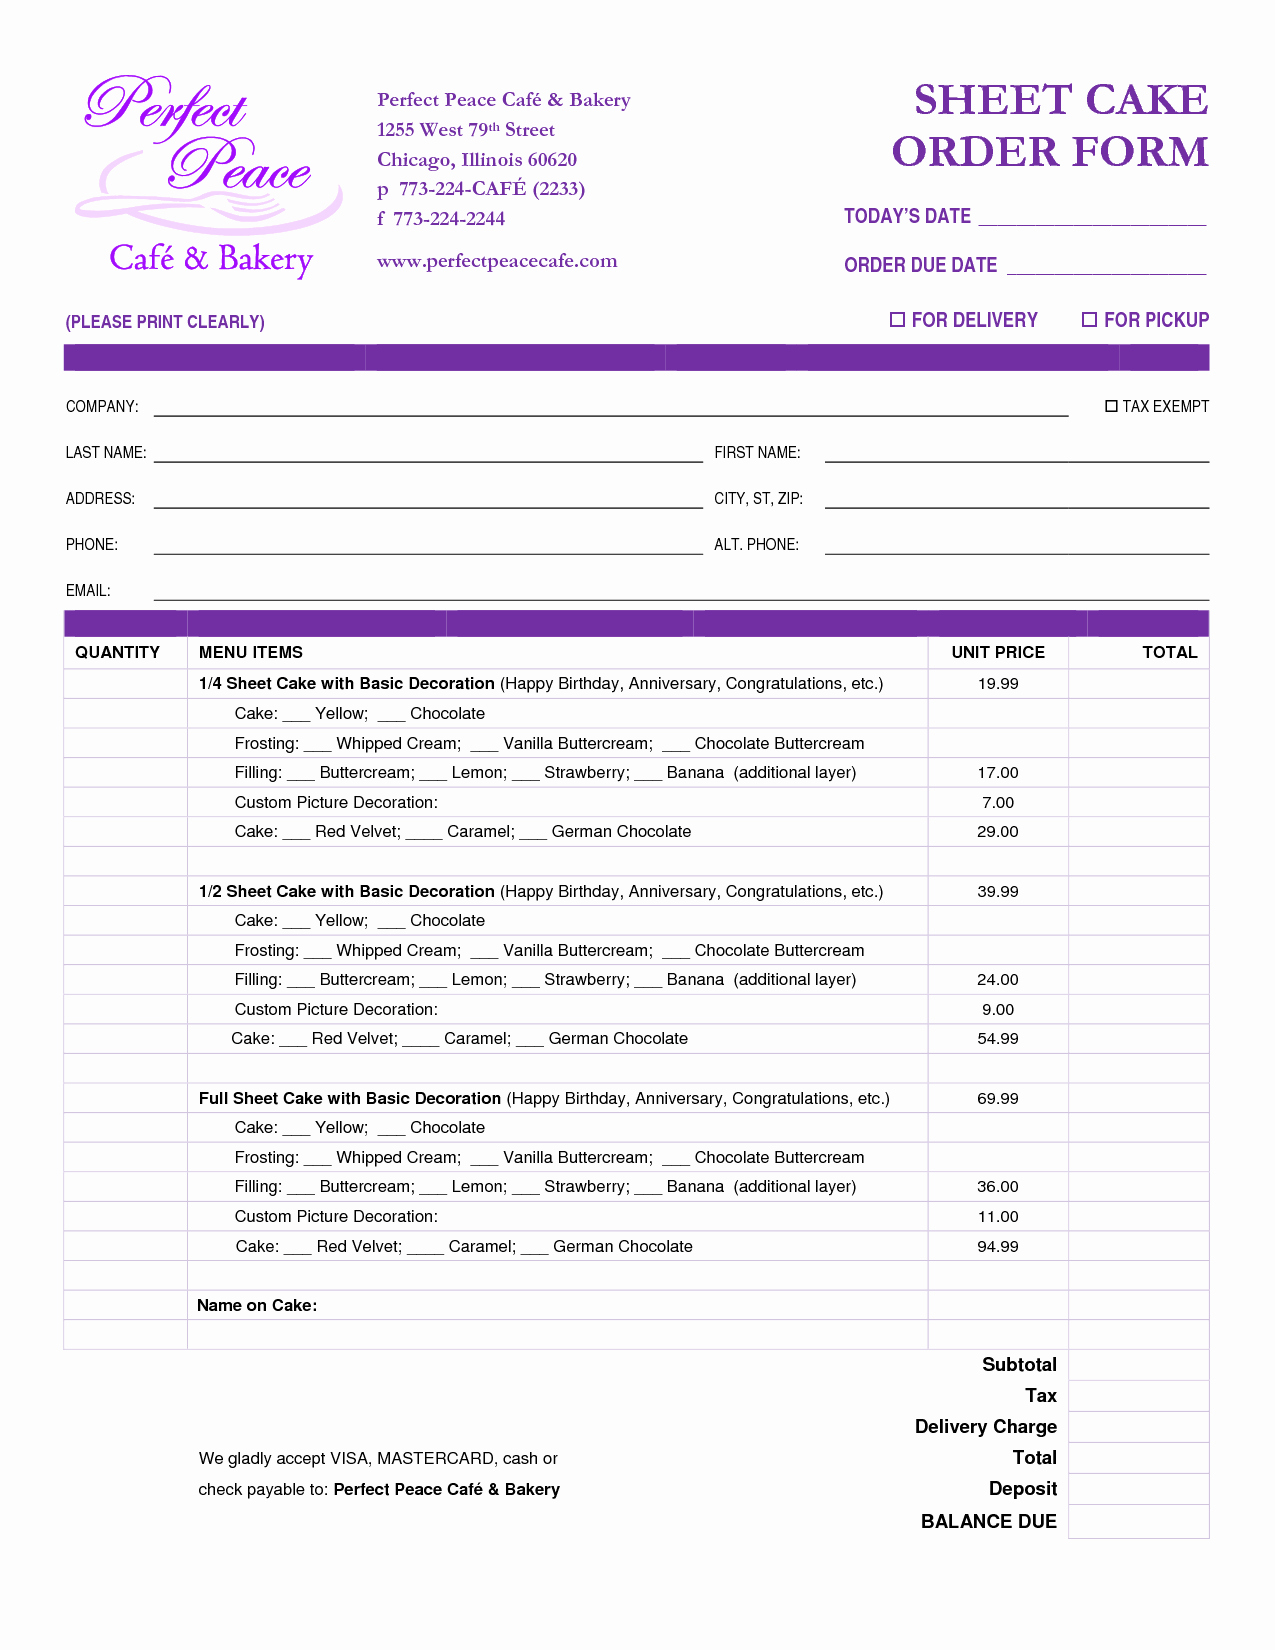 Bakery order form Template Free Beautiful Cake order form Template Free Google Search